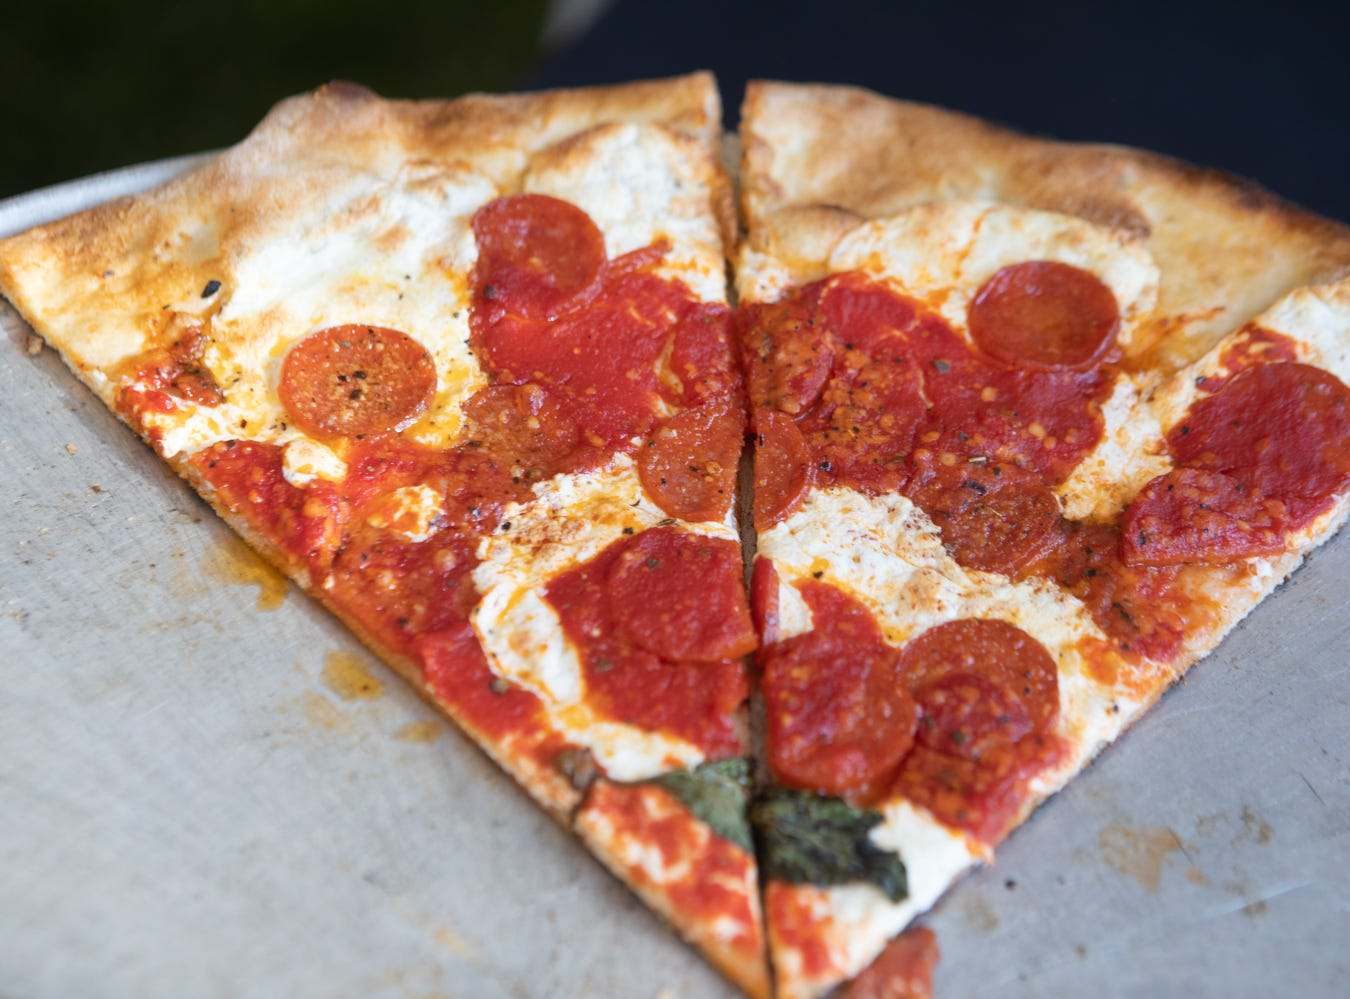 Grimaldi's pizza was a great spot for pie at the Scottsdale Culinary Festival on April 13, 2019.